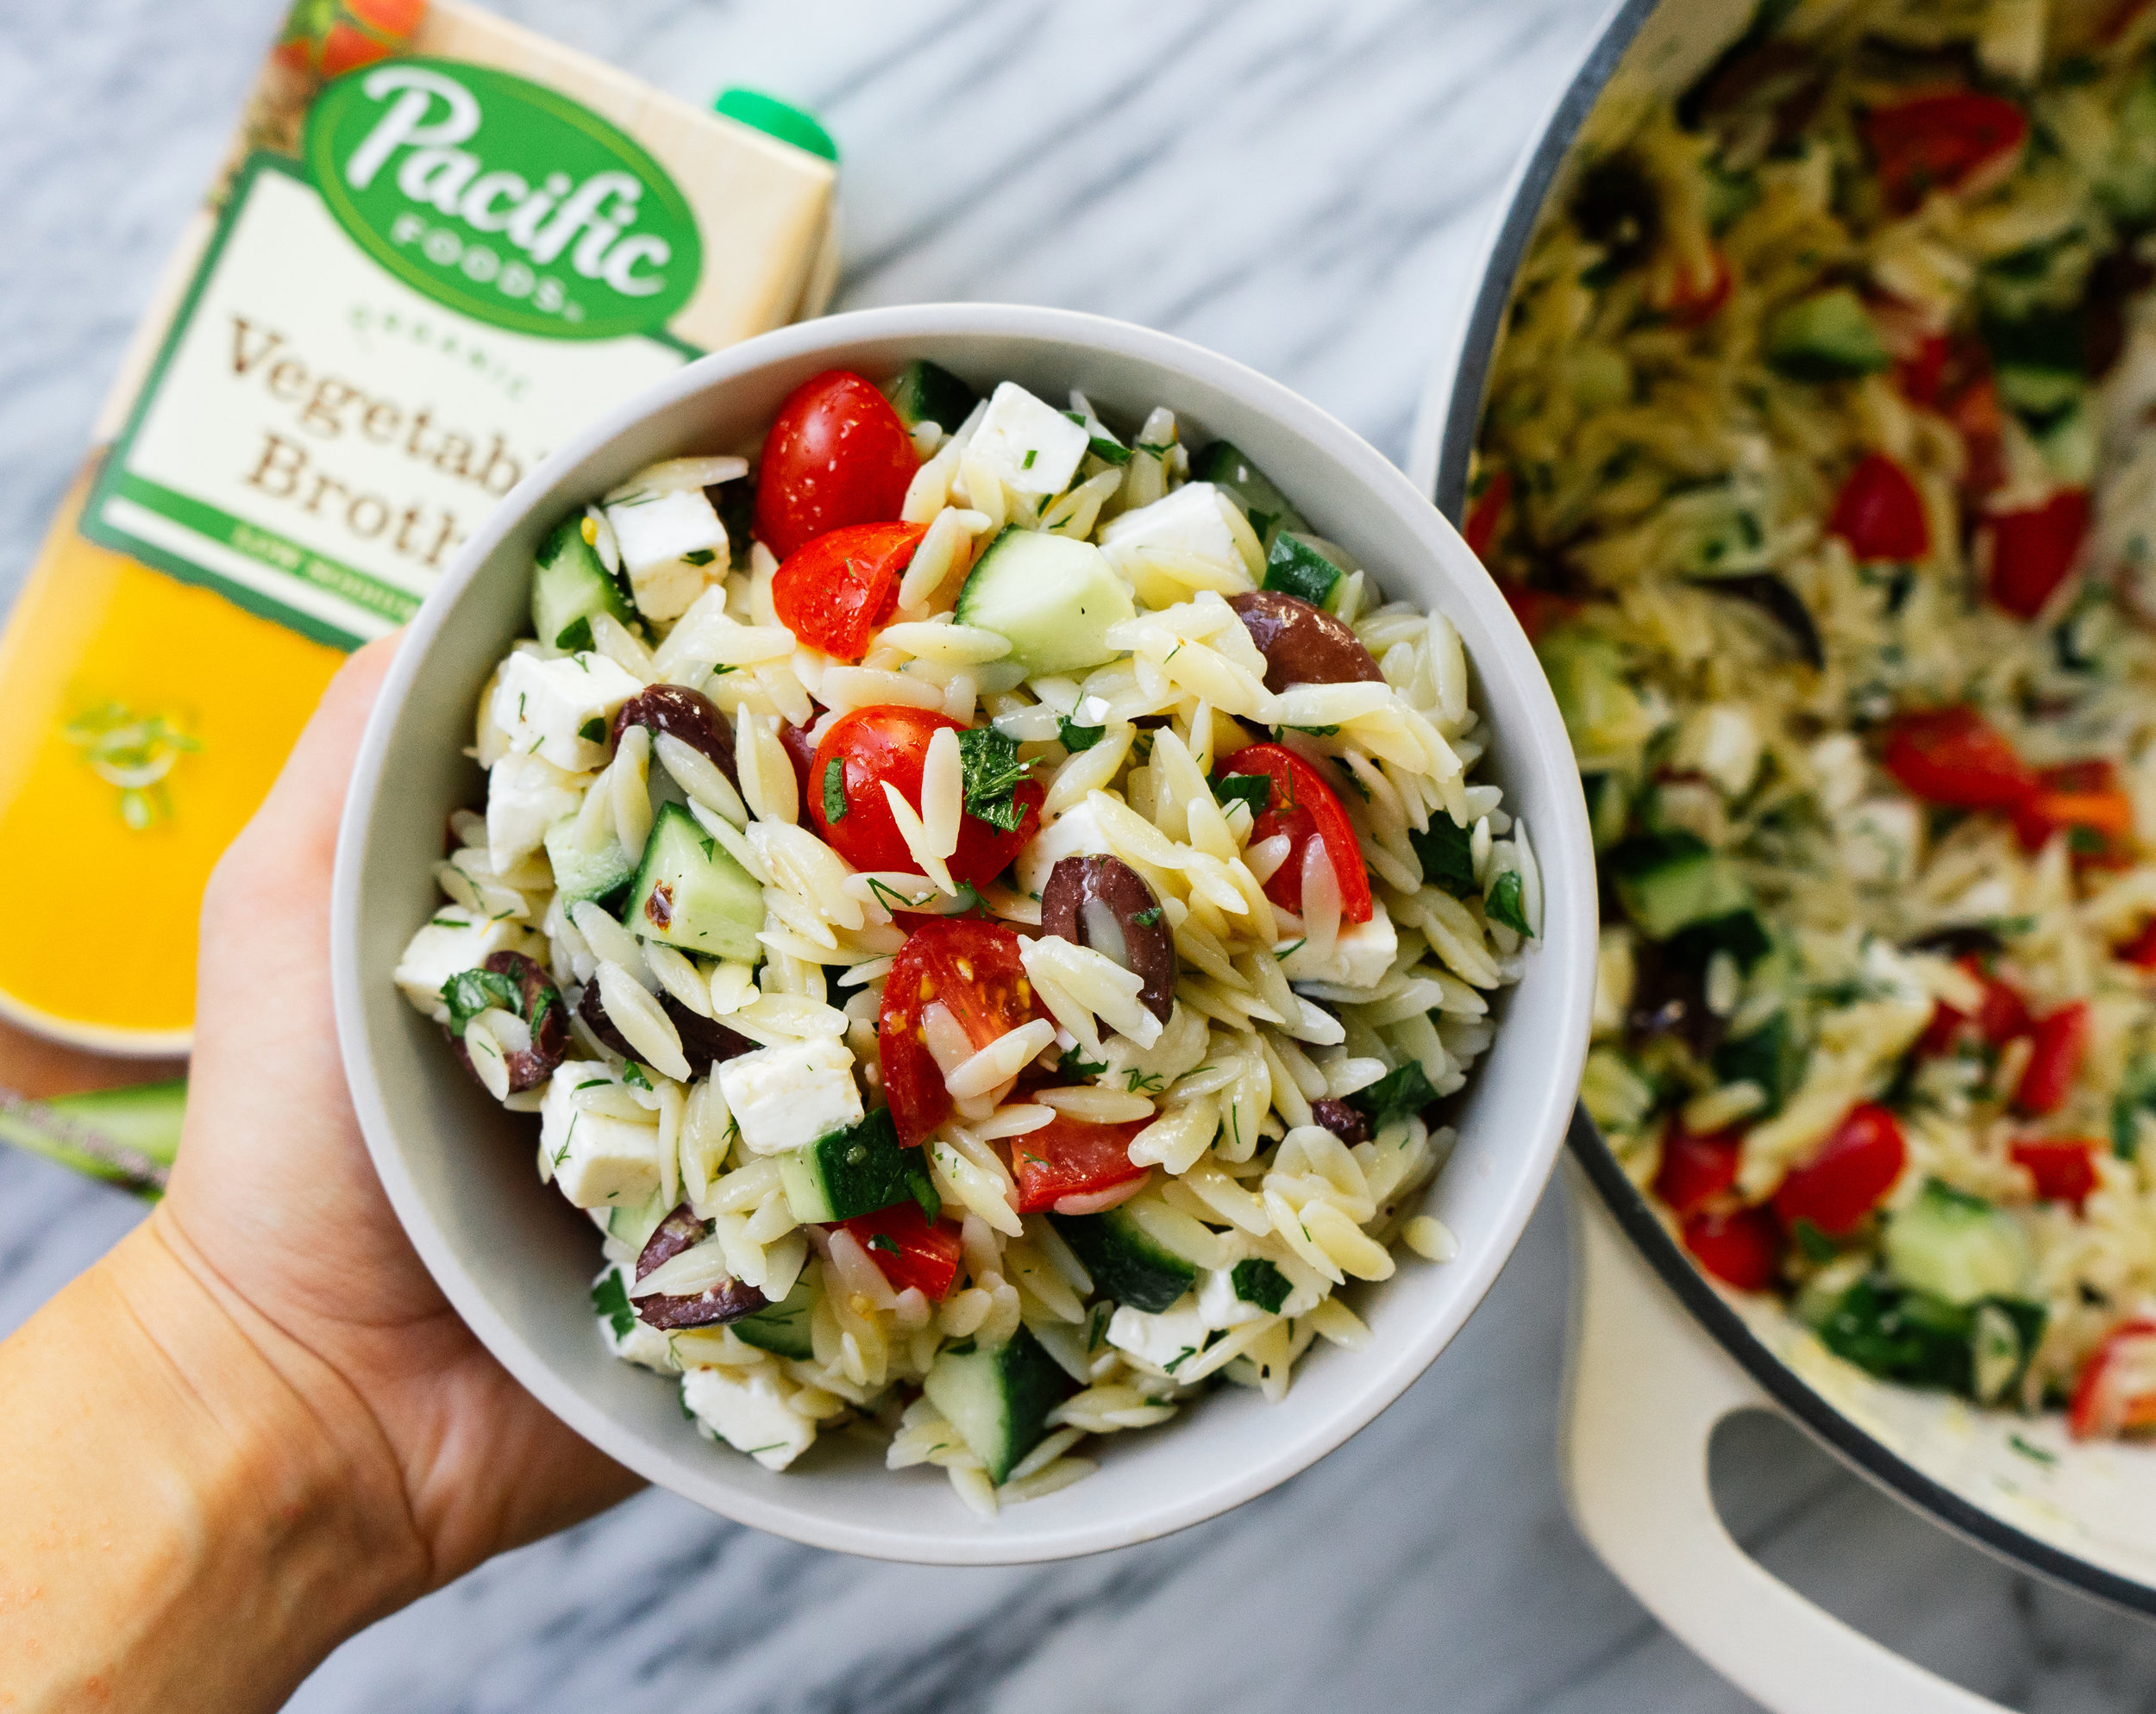 Mediterranean Orzo Salad made with Pacific Foods Low Sodium Vegetable Broth #sponsored This quick and easy recipe is perfect for that back-to-school and back-to-work meal prep. Cook this dish once and enjoy it all week!! This dish is bursting with flavor because it starts with the orzo cooked in Pacific Foods Low Sodium Vegetable Broth instead of just water and then is layered with lots of toppings, herbs, and spices!